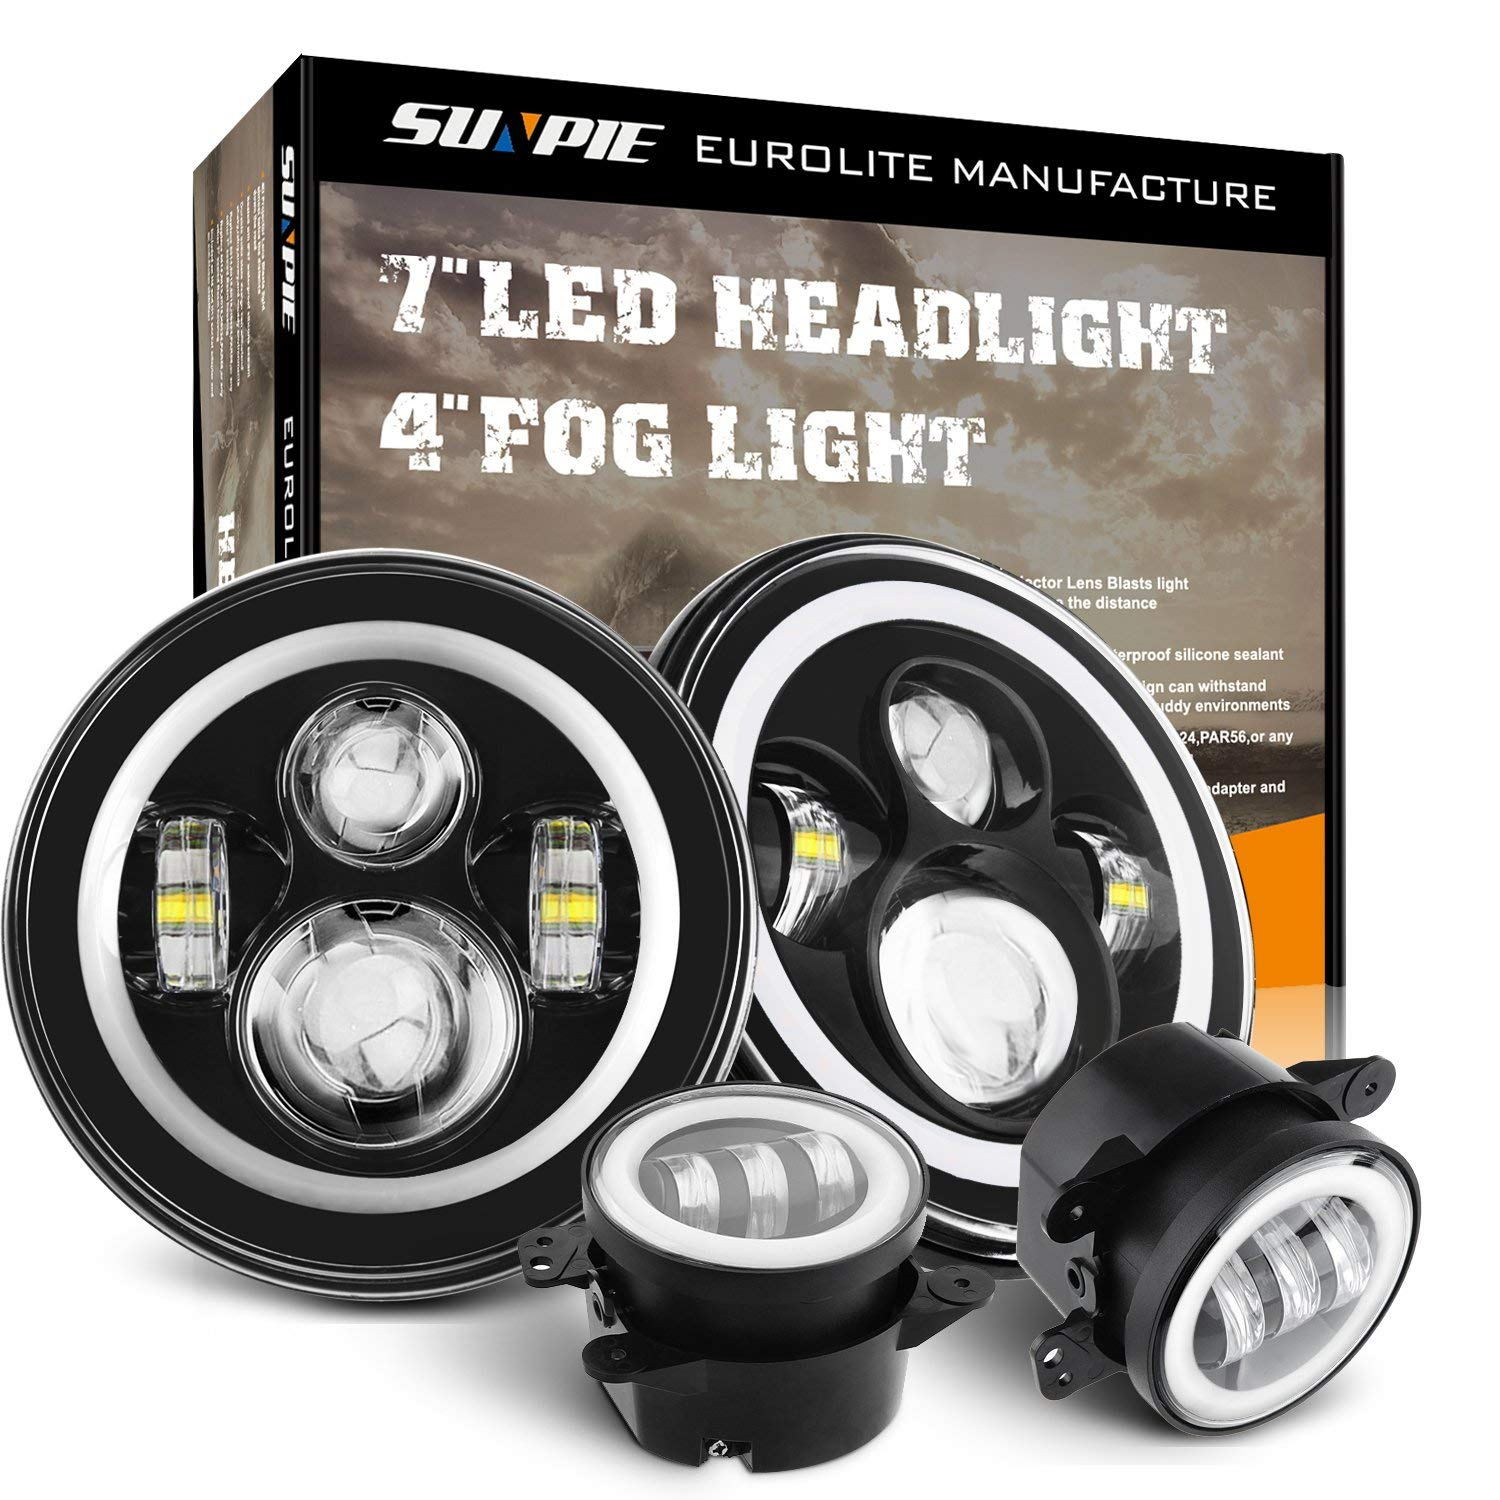 Sunpie 7 Inch LED Halo Headlights with Turn Signal Amber DRL White+ 4 '' Halo Fog Lights